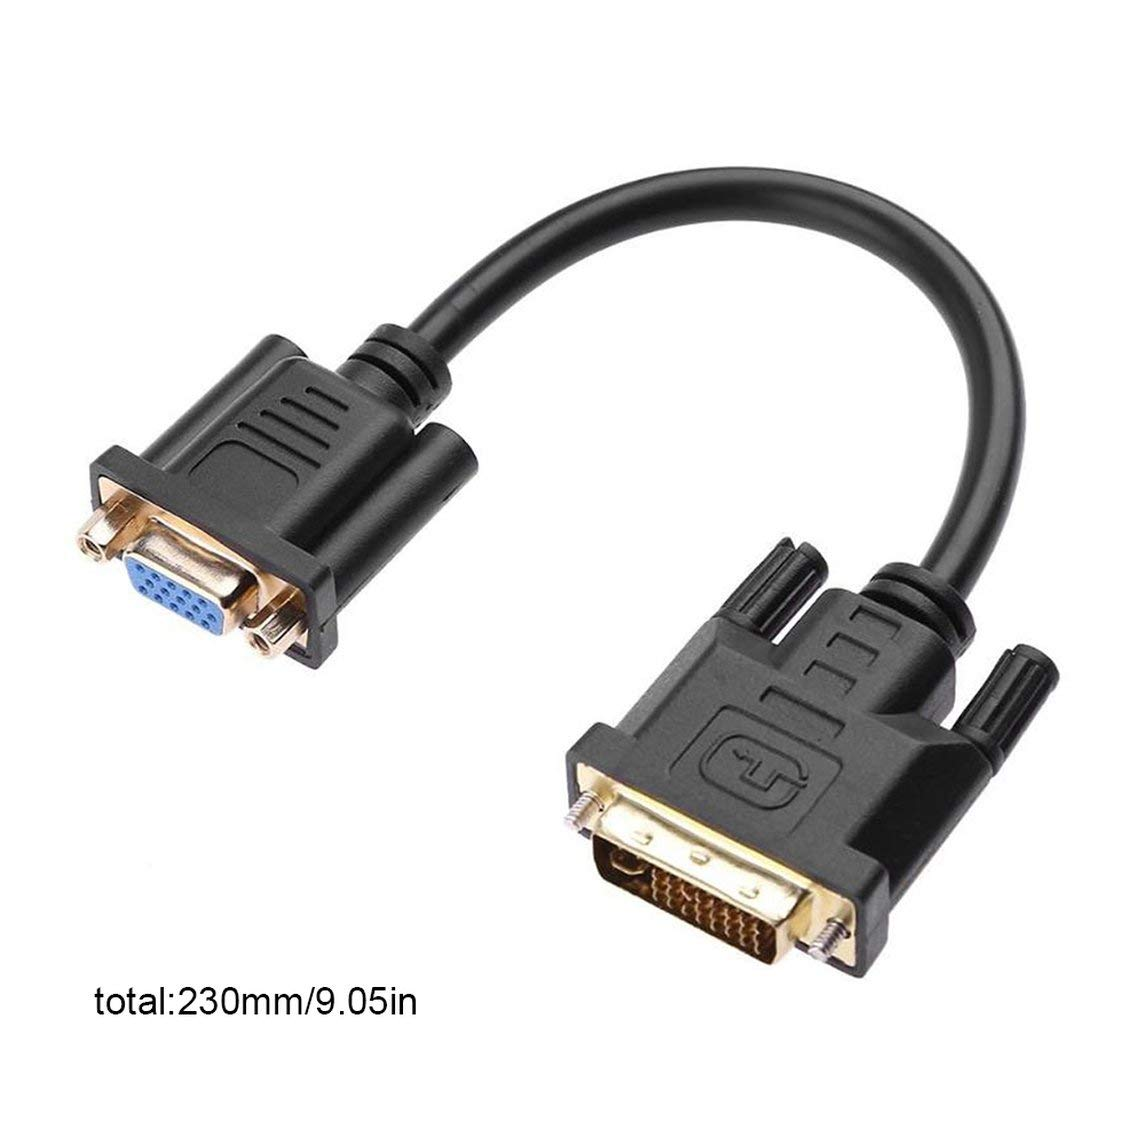 DVI-D 24+1 Pin Male to VGA 15 Pin Female Active Cable Adapter Converter US